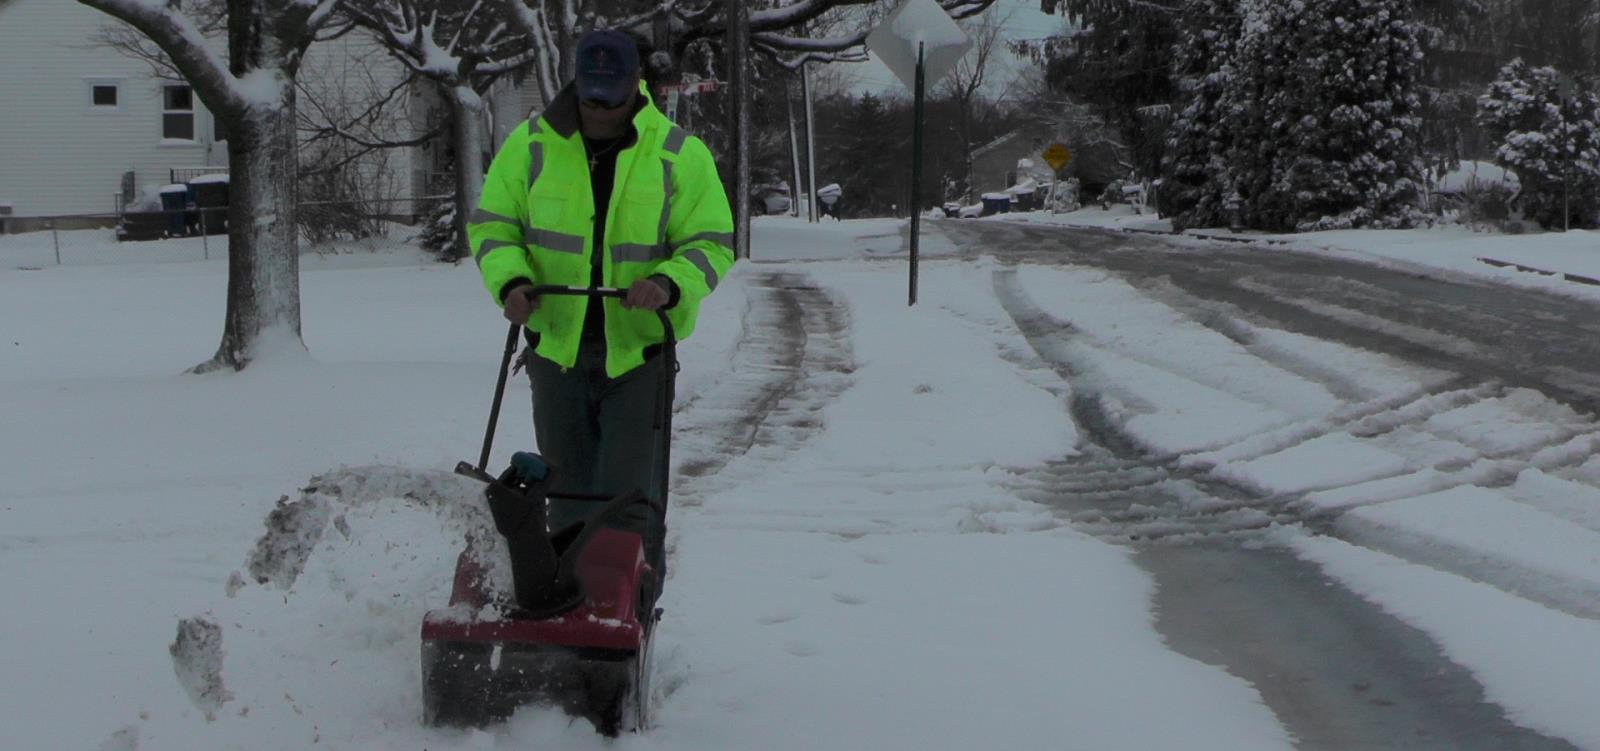 Clearing the sidewalk